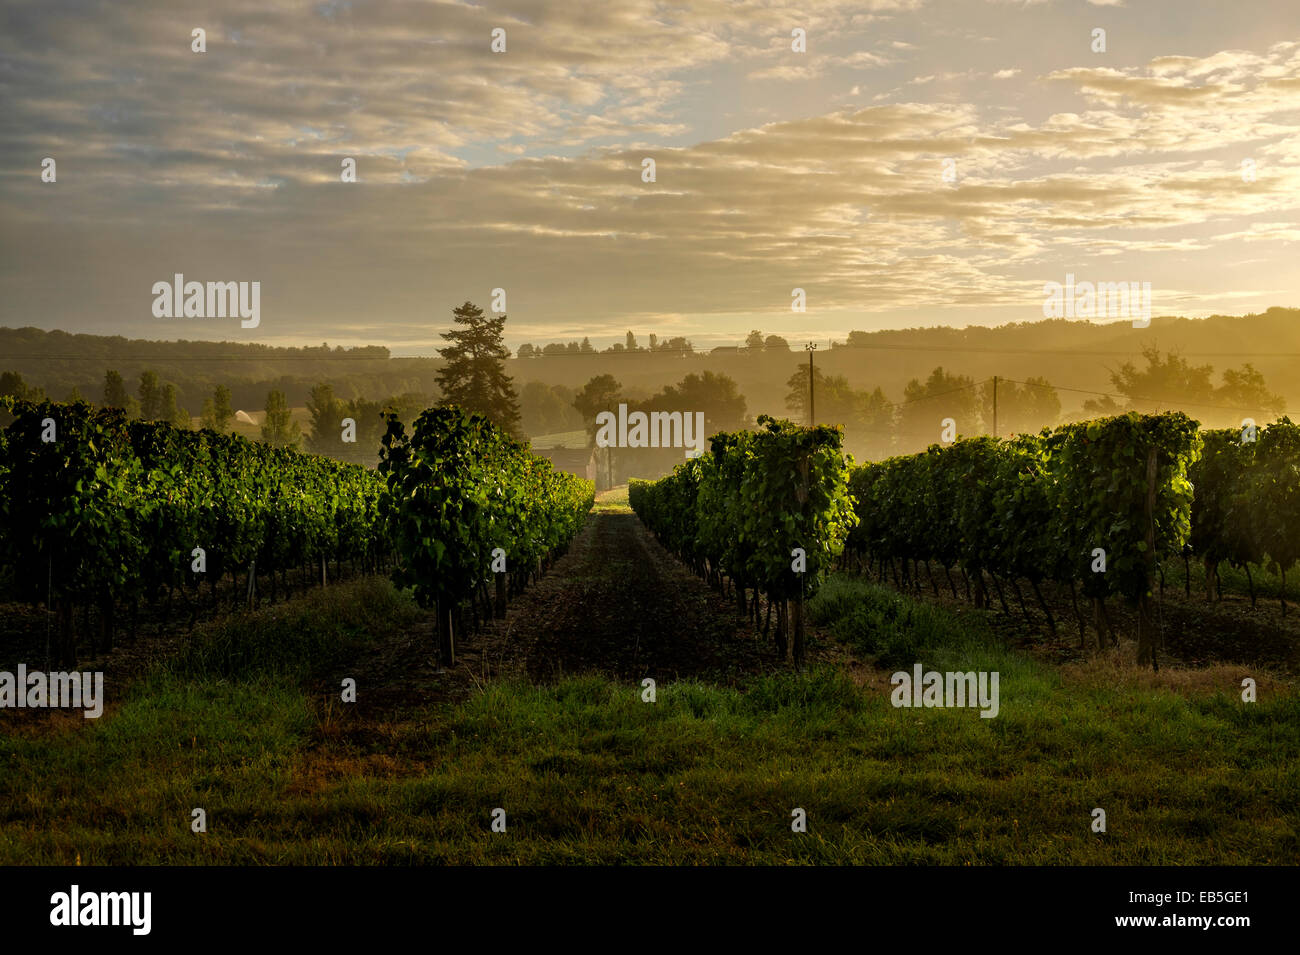 Grapevines in a vineyard Gers region of France at sunrise. Midi-Pyrénées - Stock Image